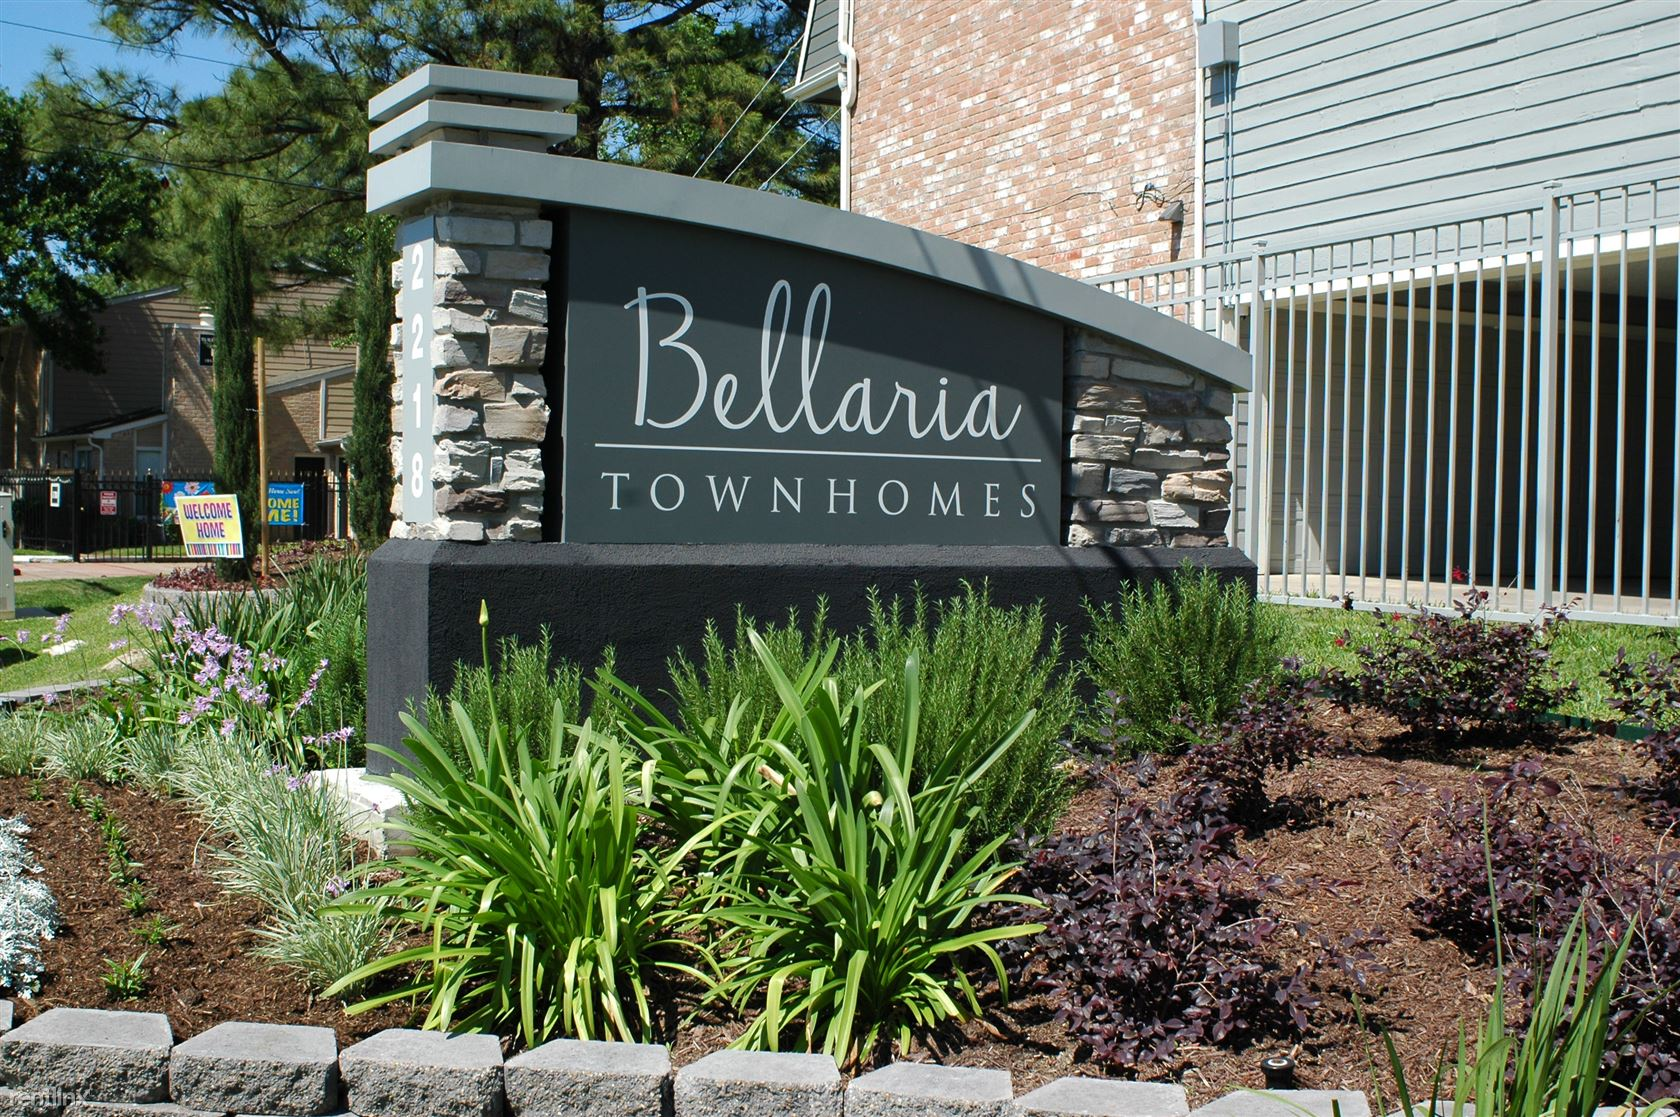 Bellaria Townhomes